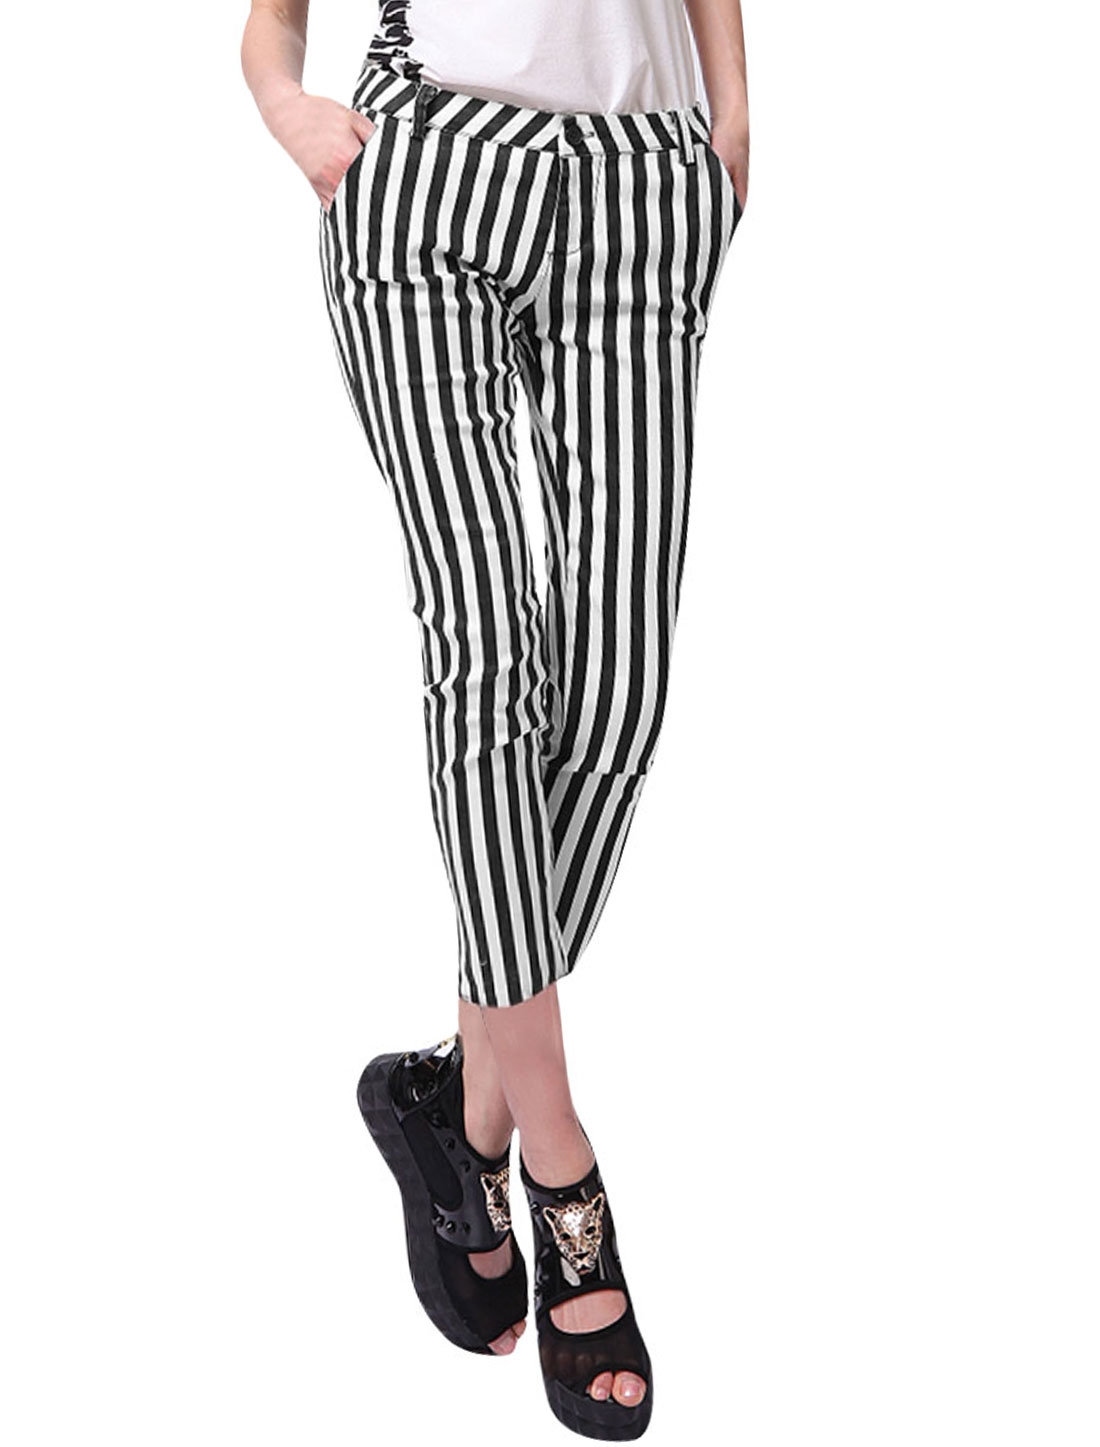 Lady Black White Elastic Waist Zip Fly Pockets Stripes Prints Capris XS